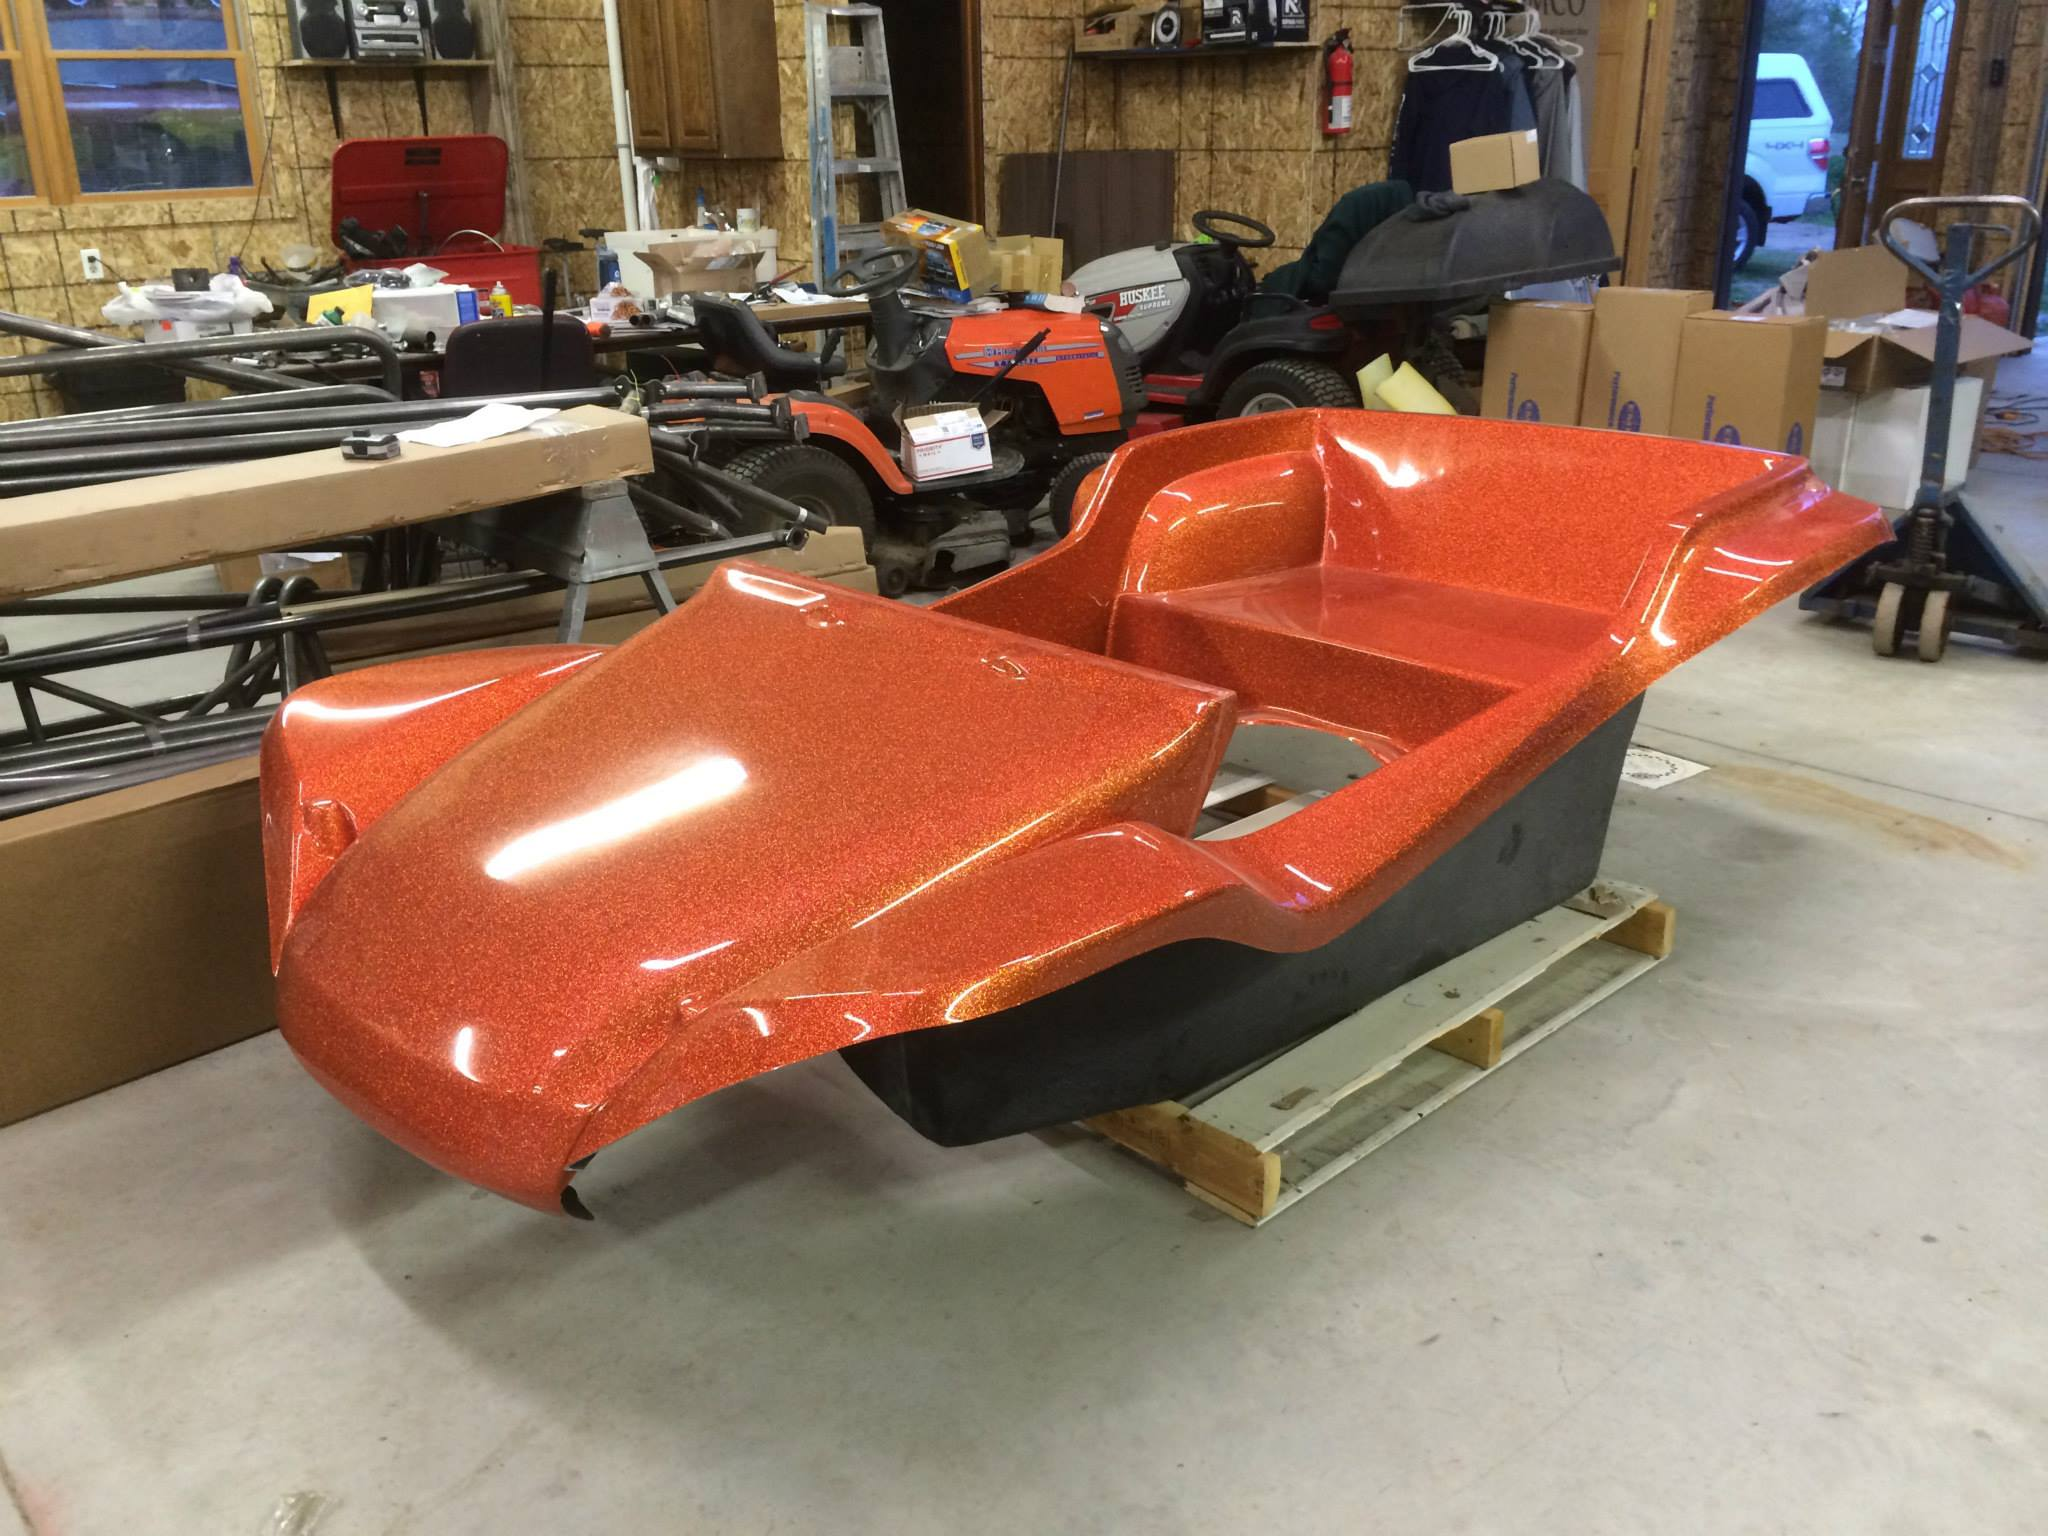 Berrien Buggy ACME Nostalgia Chassis build at Adirondack Aircooled VWs LLC